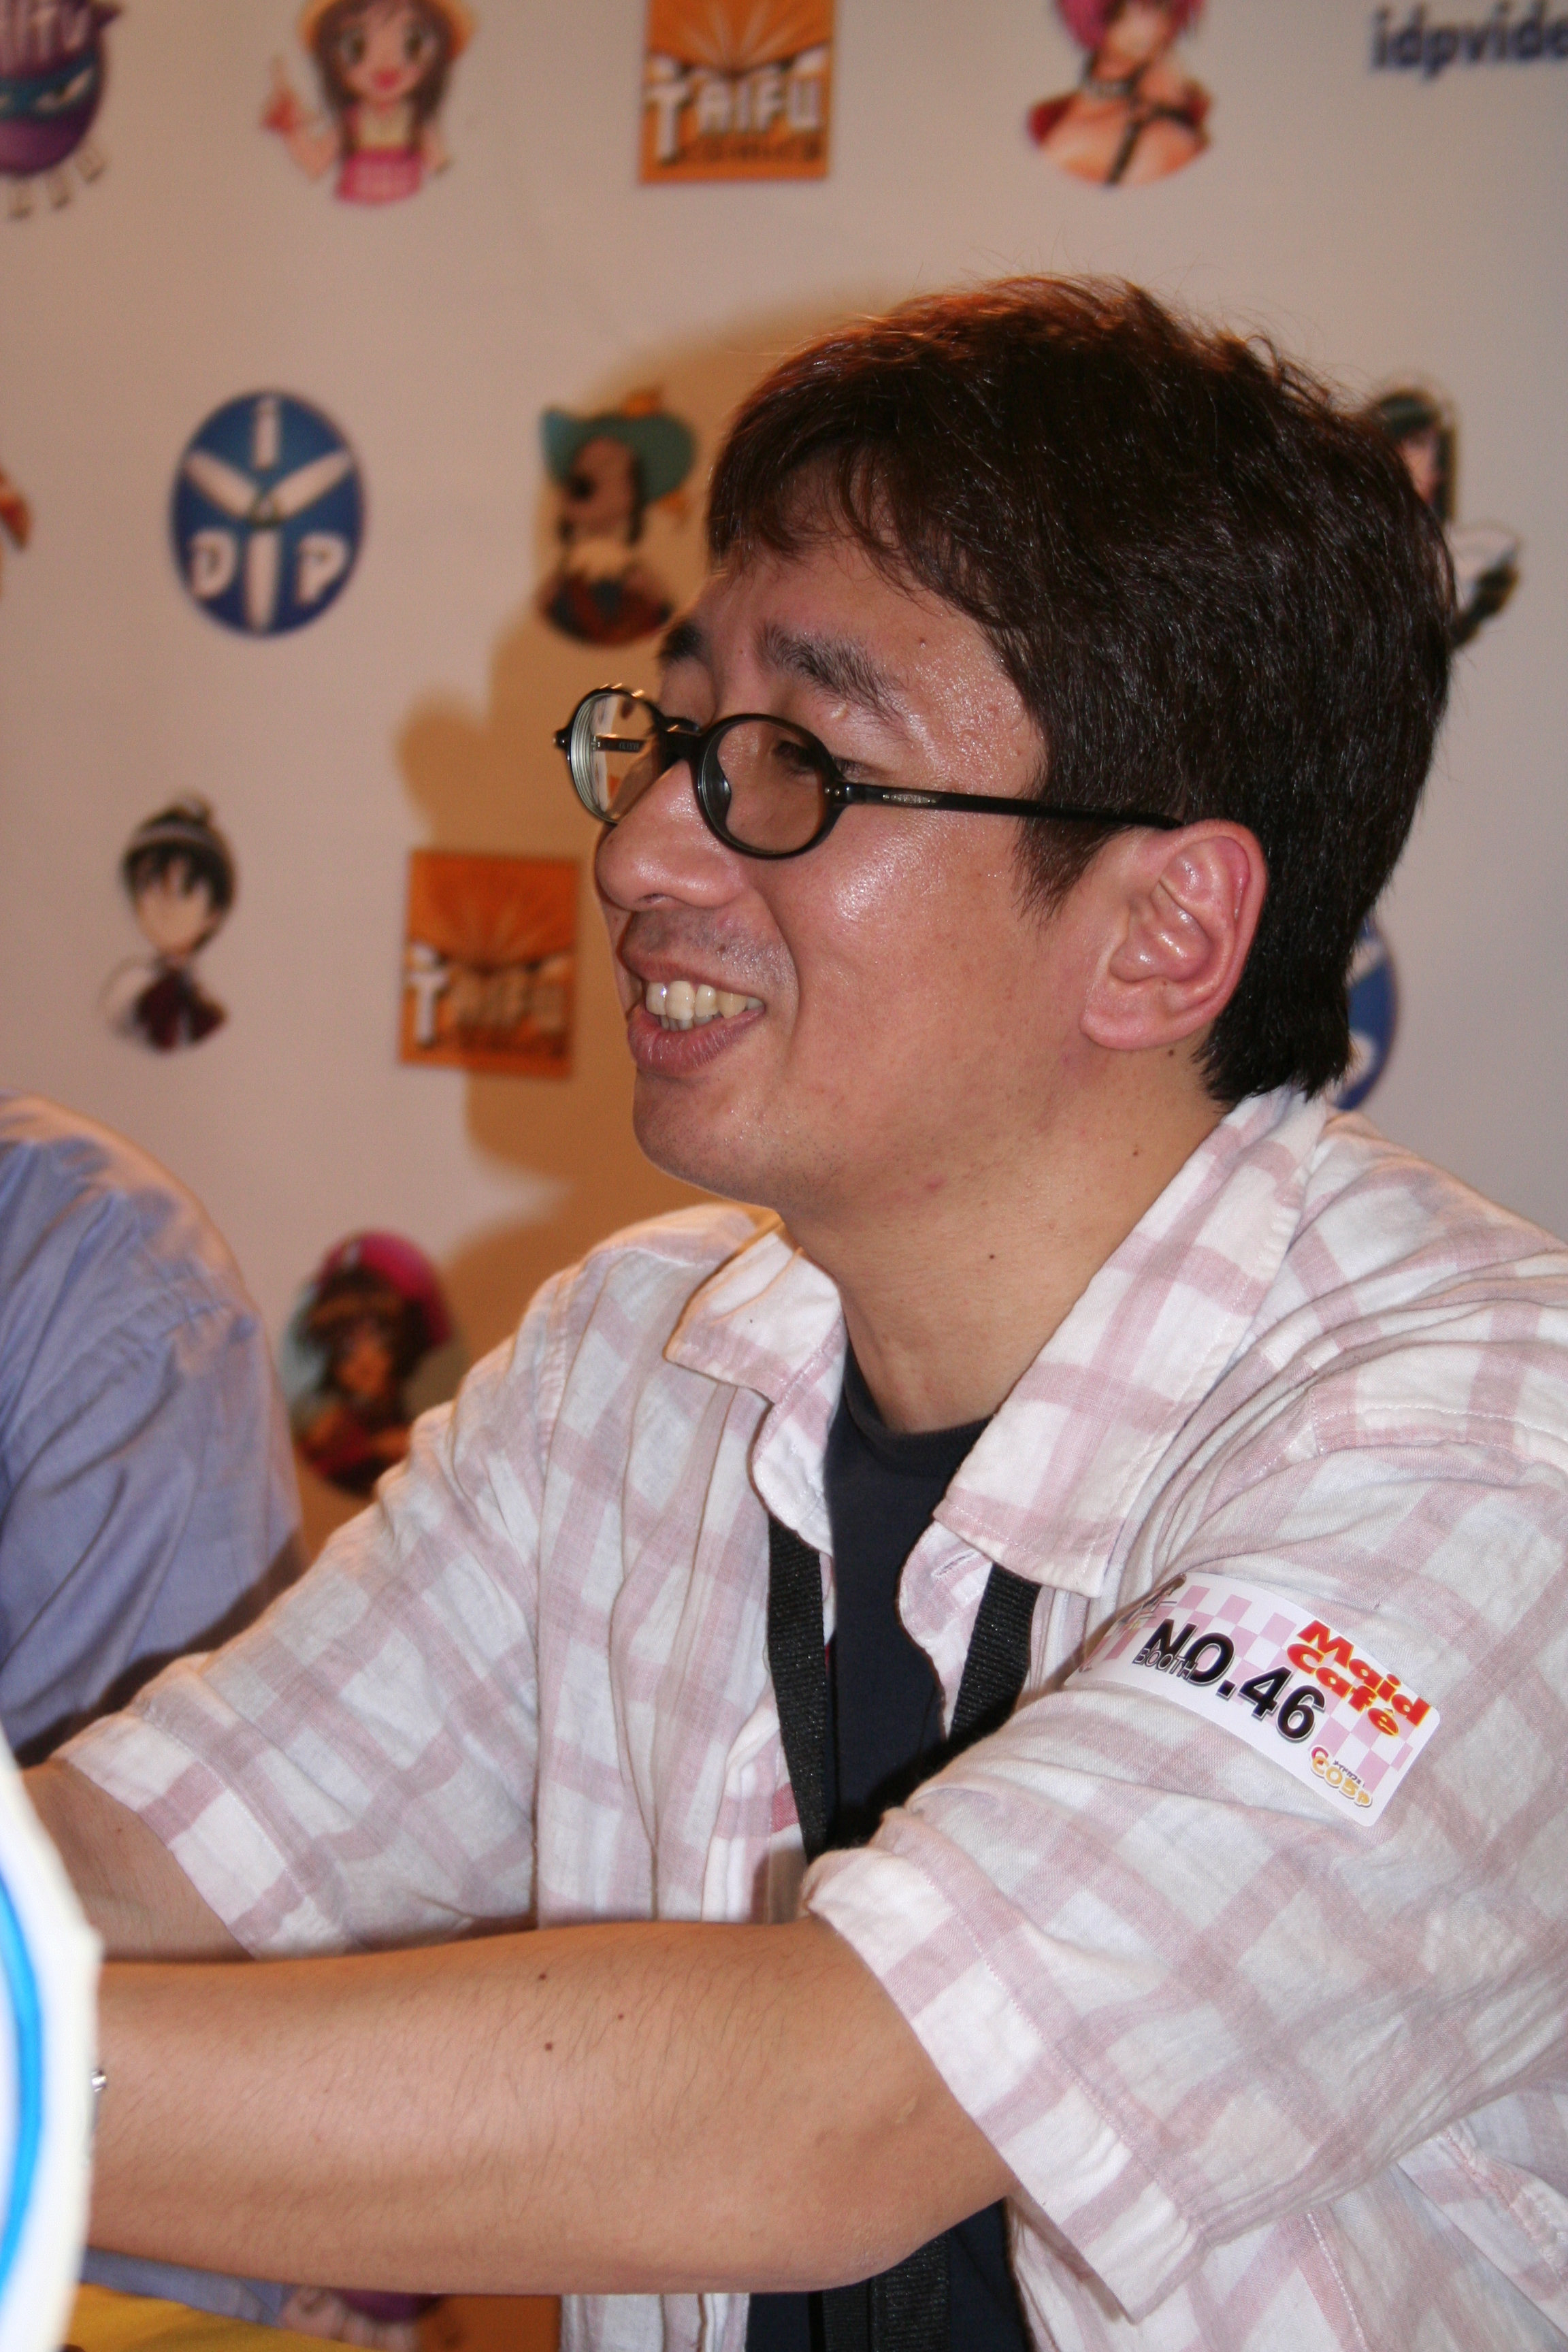 http://upload.wikimedia.org/wikipedia/commons/8/81/Hideki_Owada_20060707_Japan_Expo_02.jpg